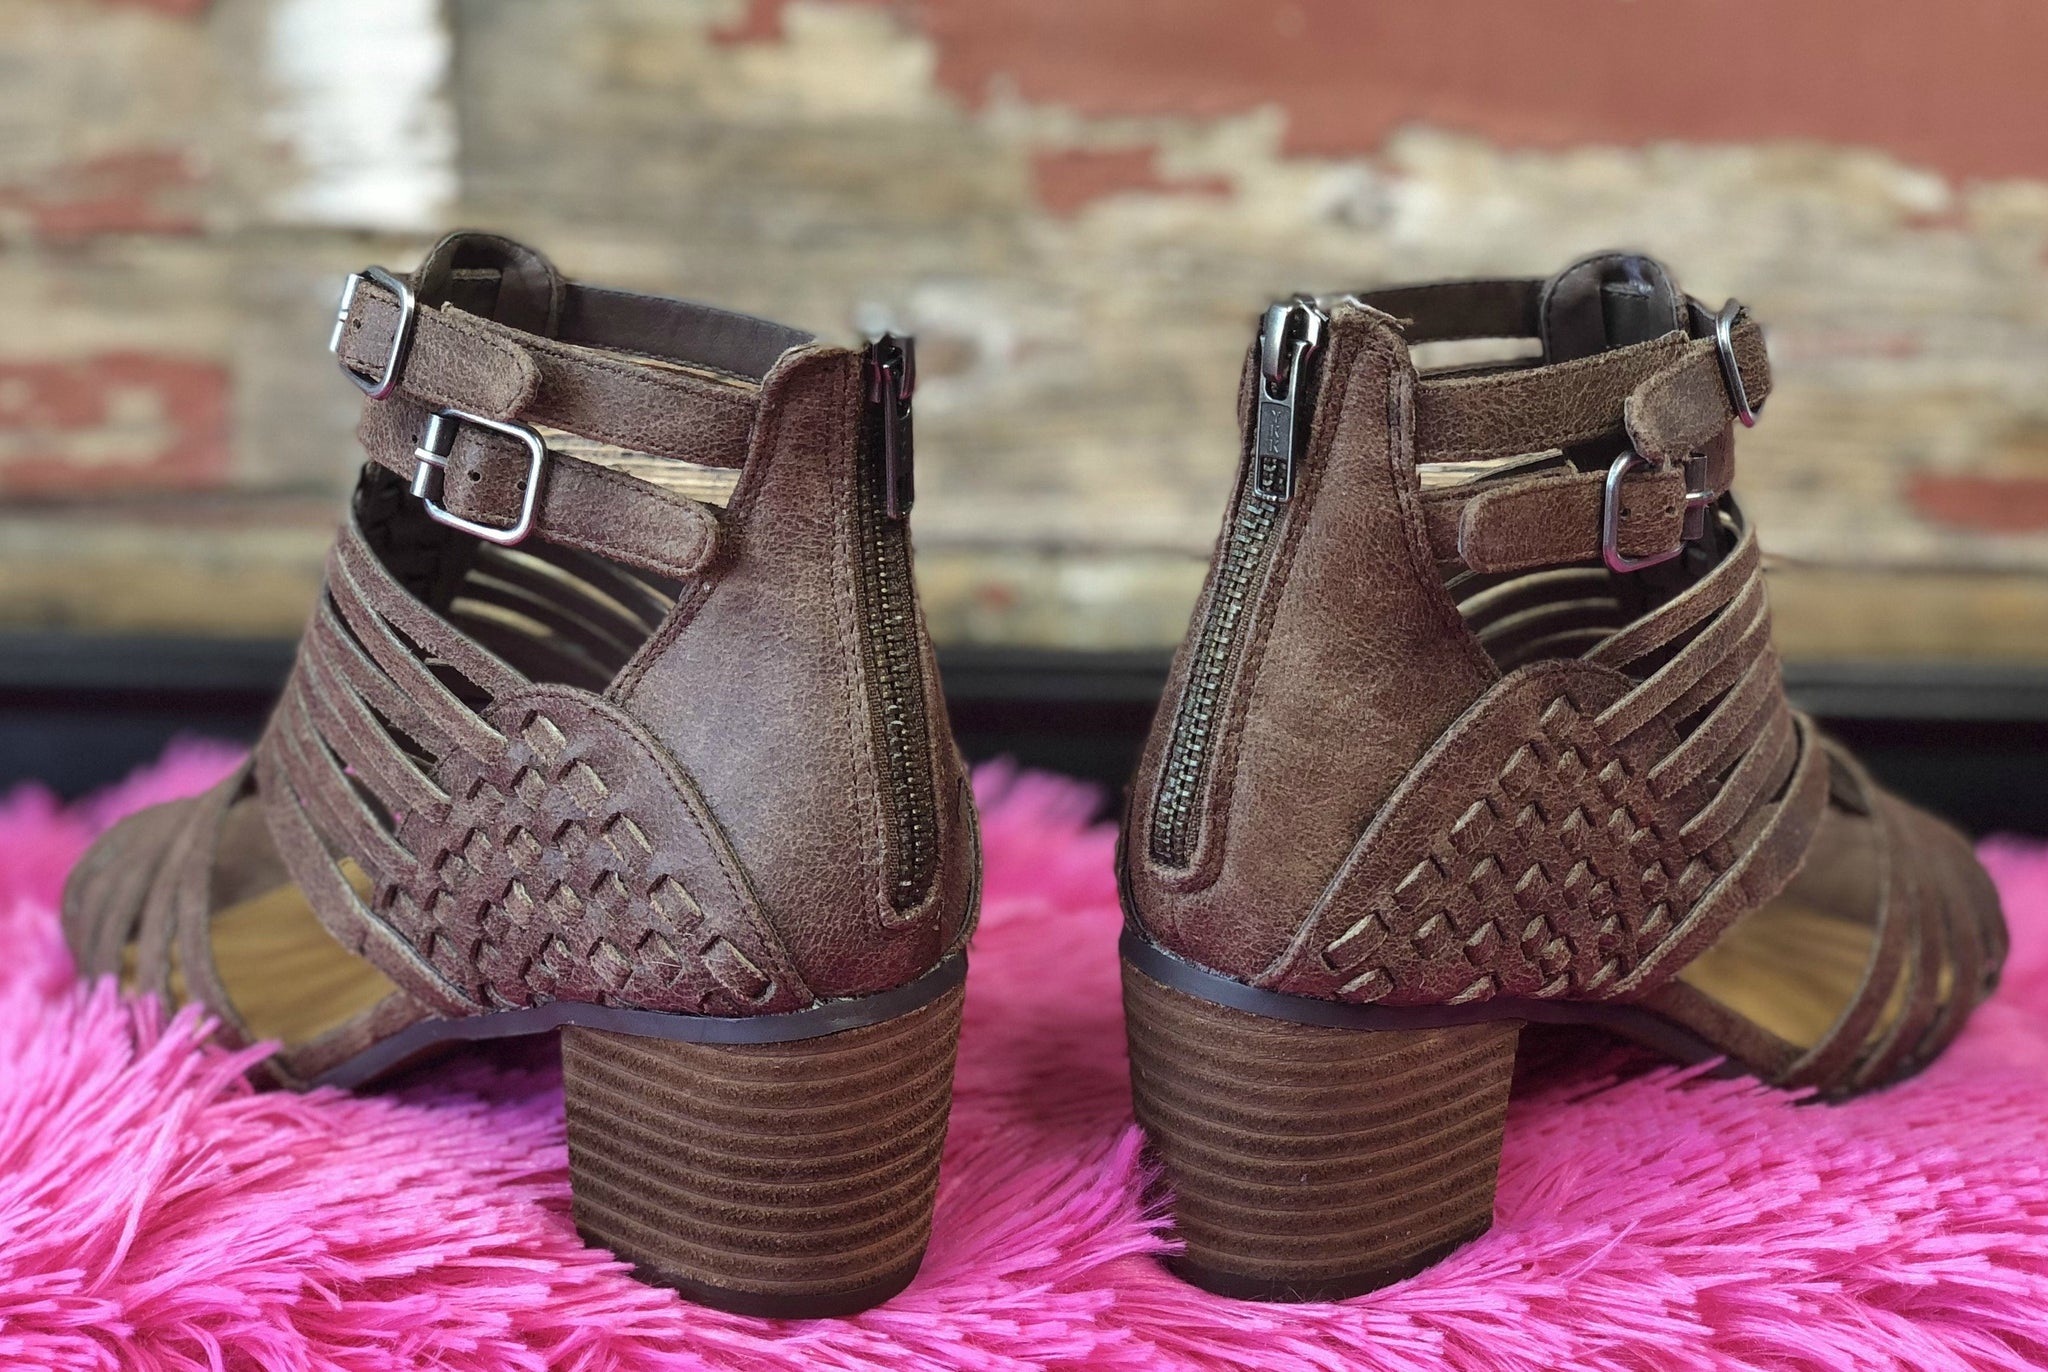 Walk Out of Here Taupe Caged Heels